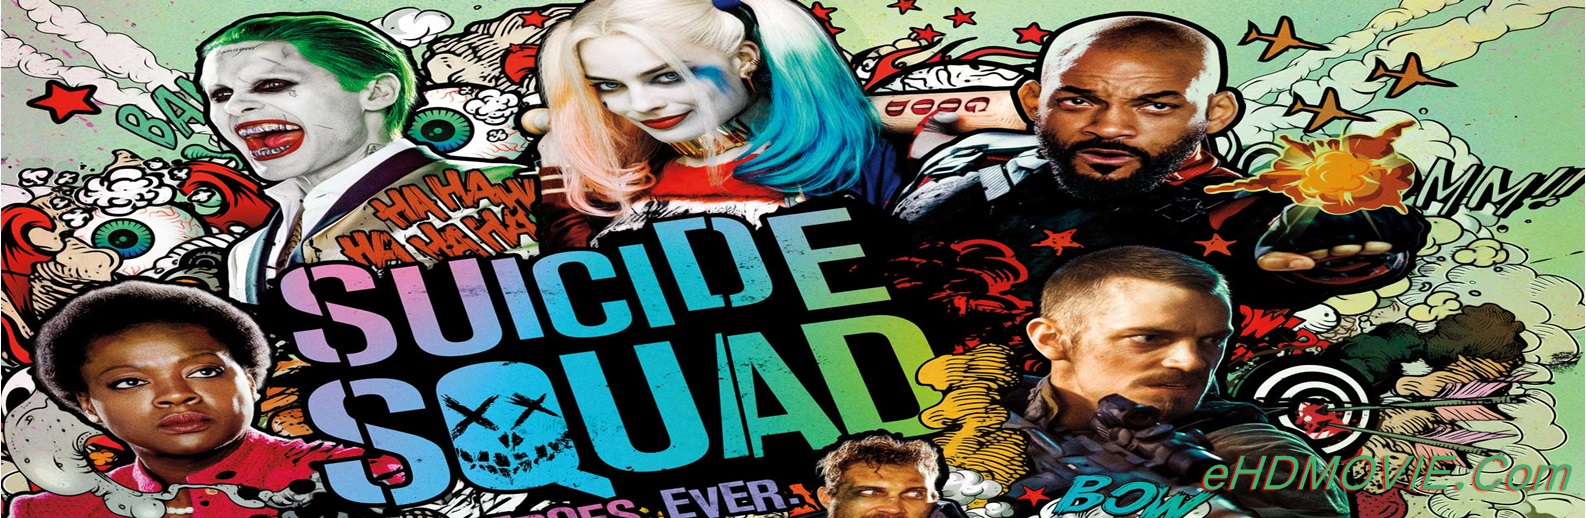 Suicide Squad 2016 Full Movie English 720p - HEVC - 480p ORG BRRip 450MB - 700MB - 1GB ESubs Free Download